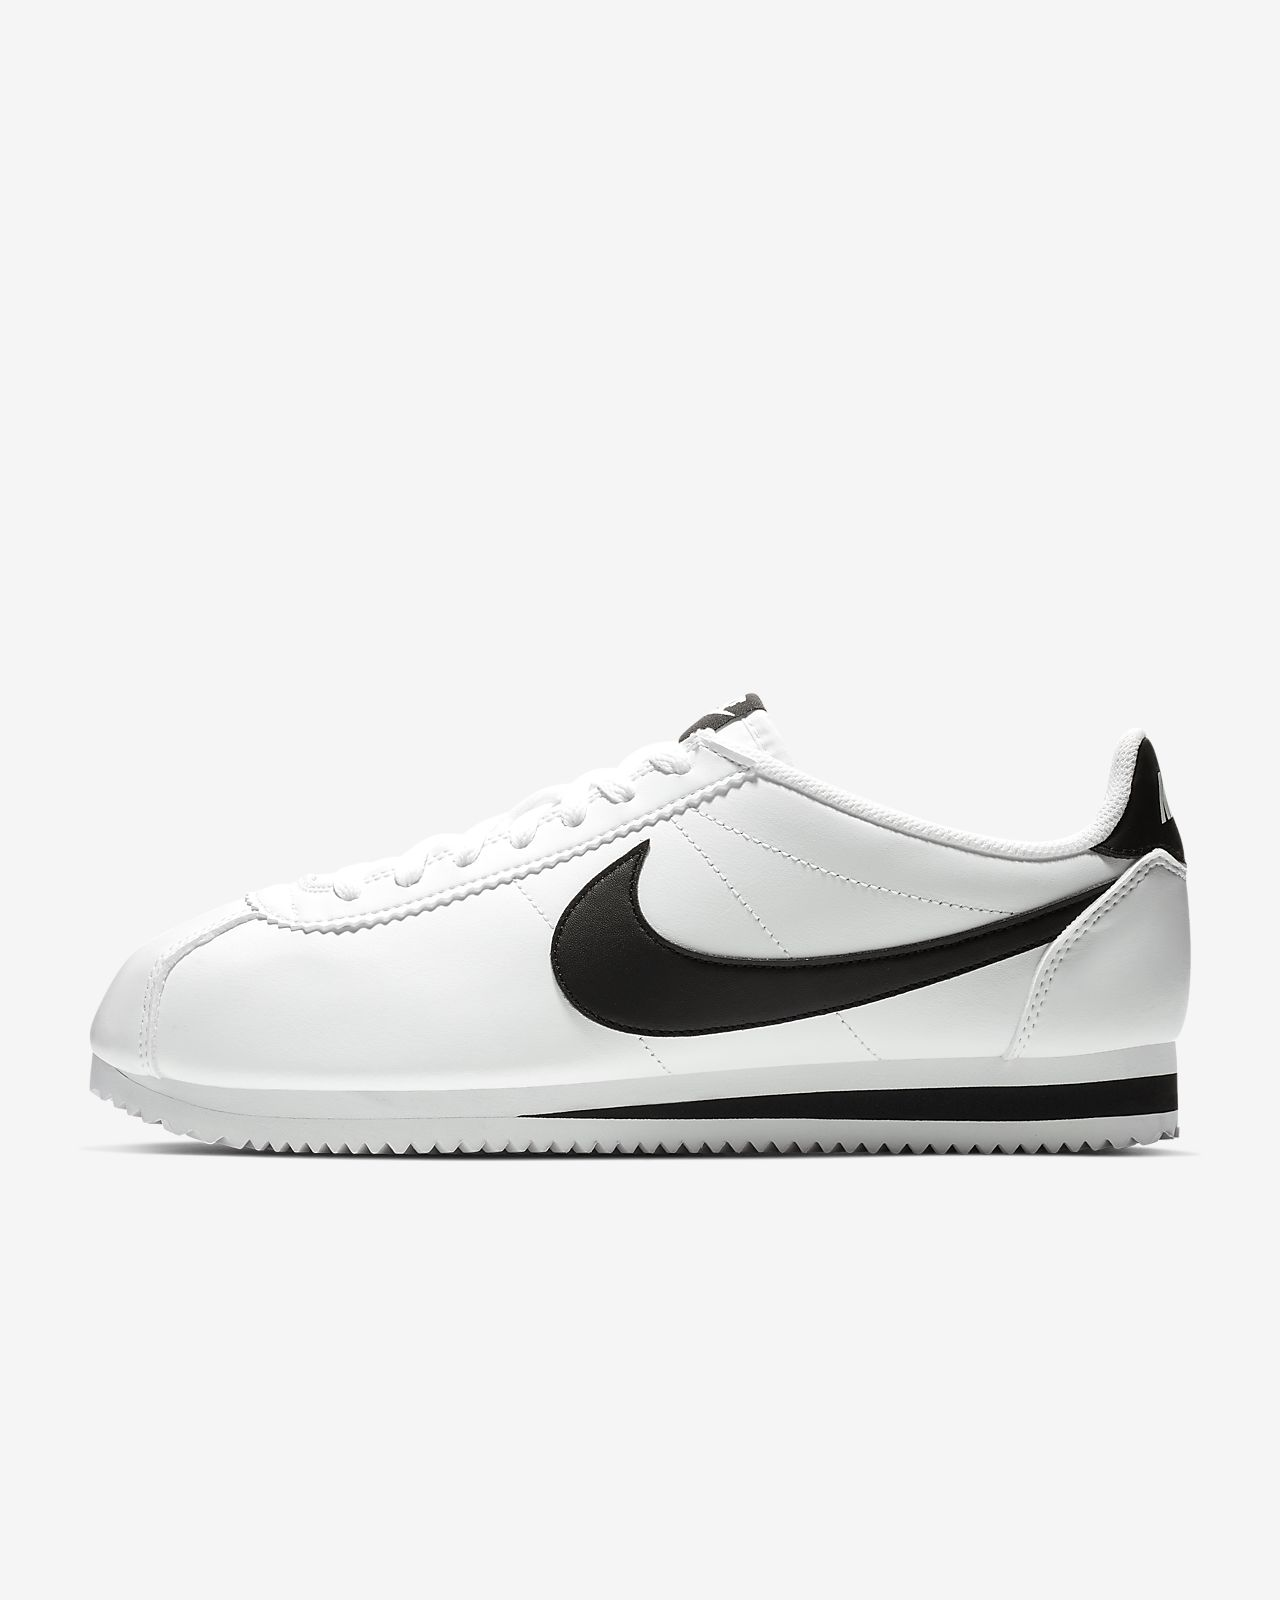 quality design 47db5 14ca9 Nike Classic Cortez Women's Shoe